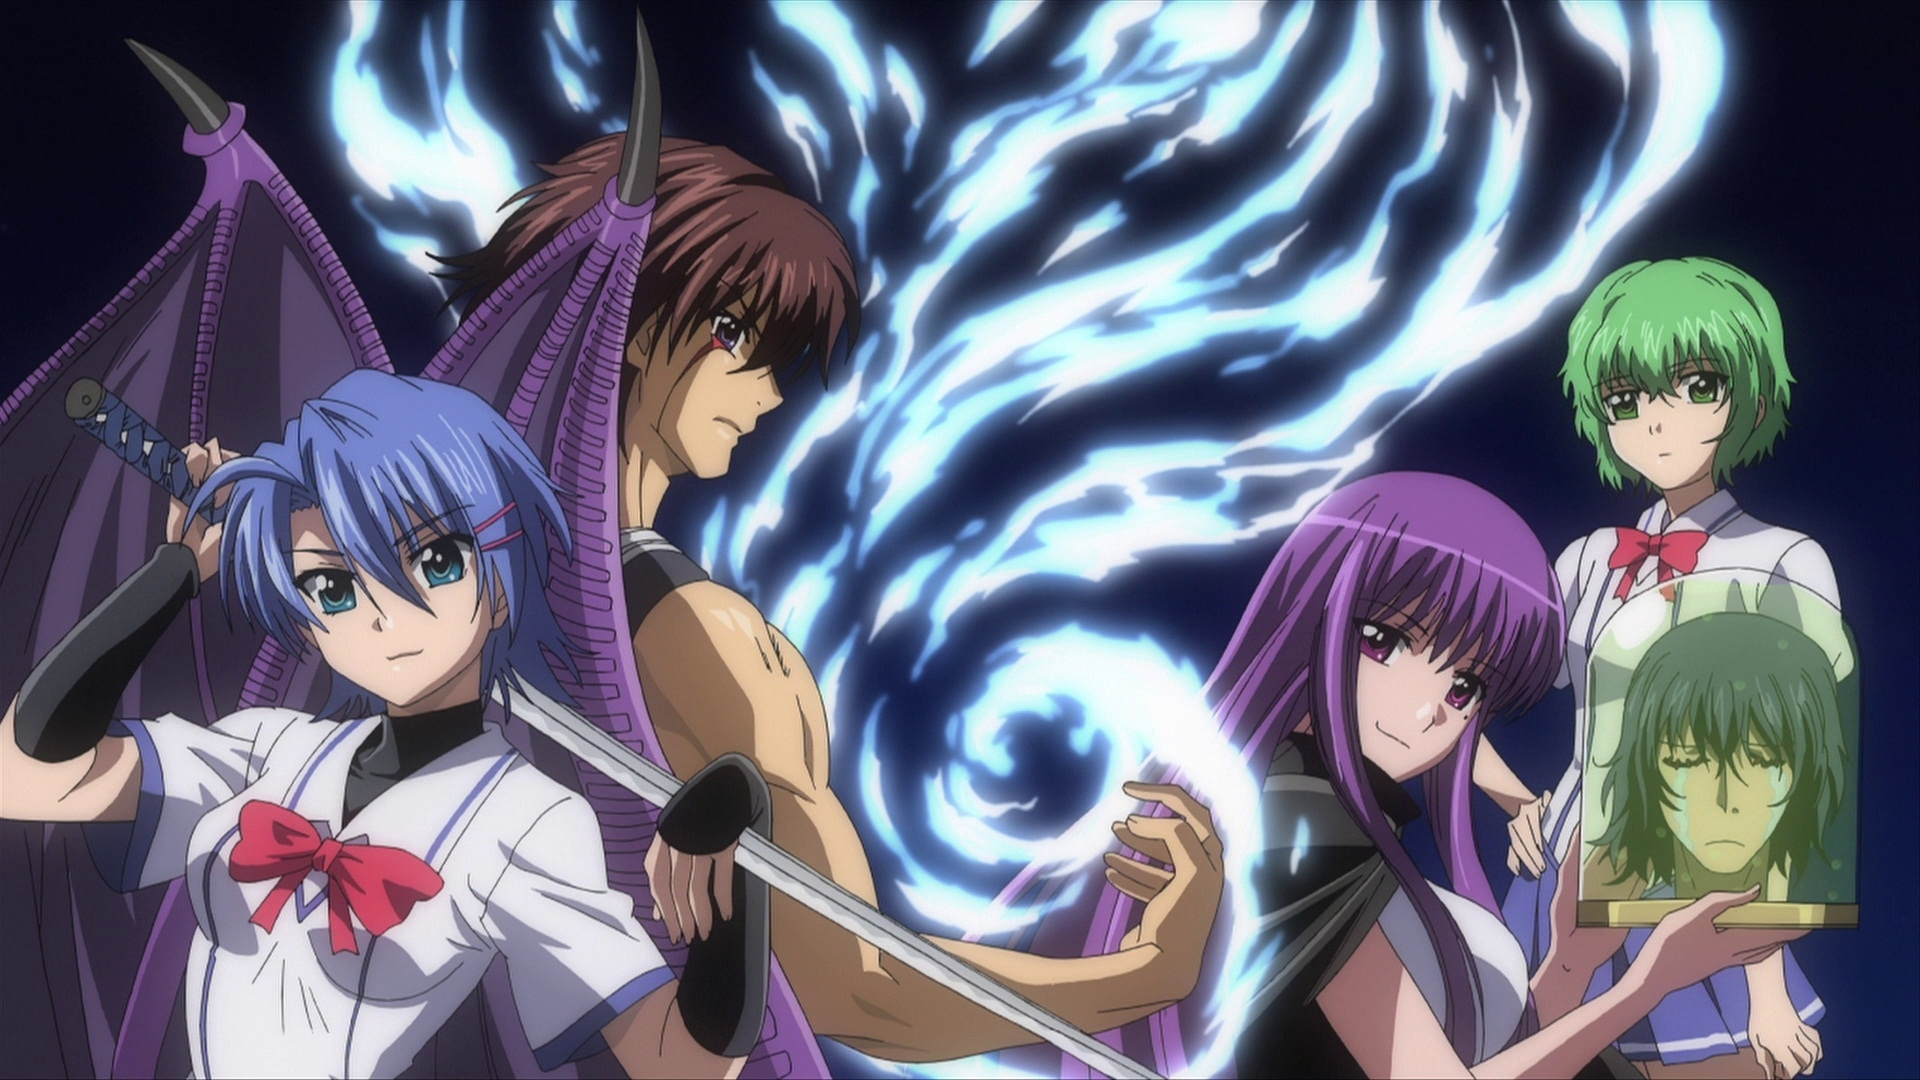 demon king daimao full hd fond d'écran and arrière-plan | 1920x1080